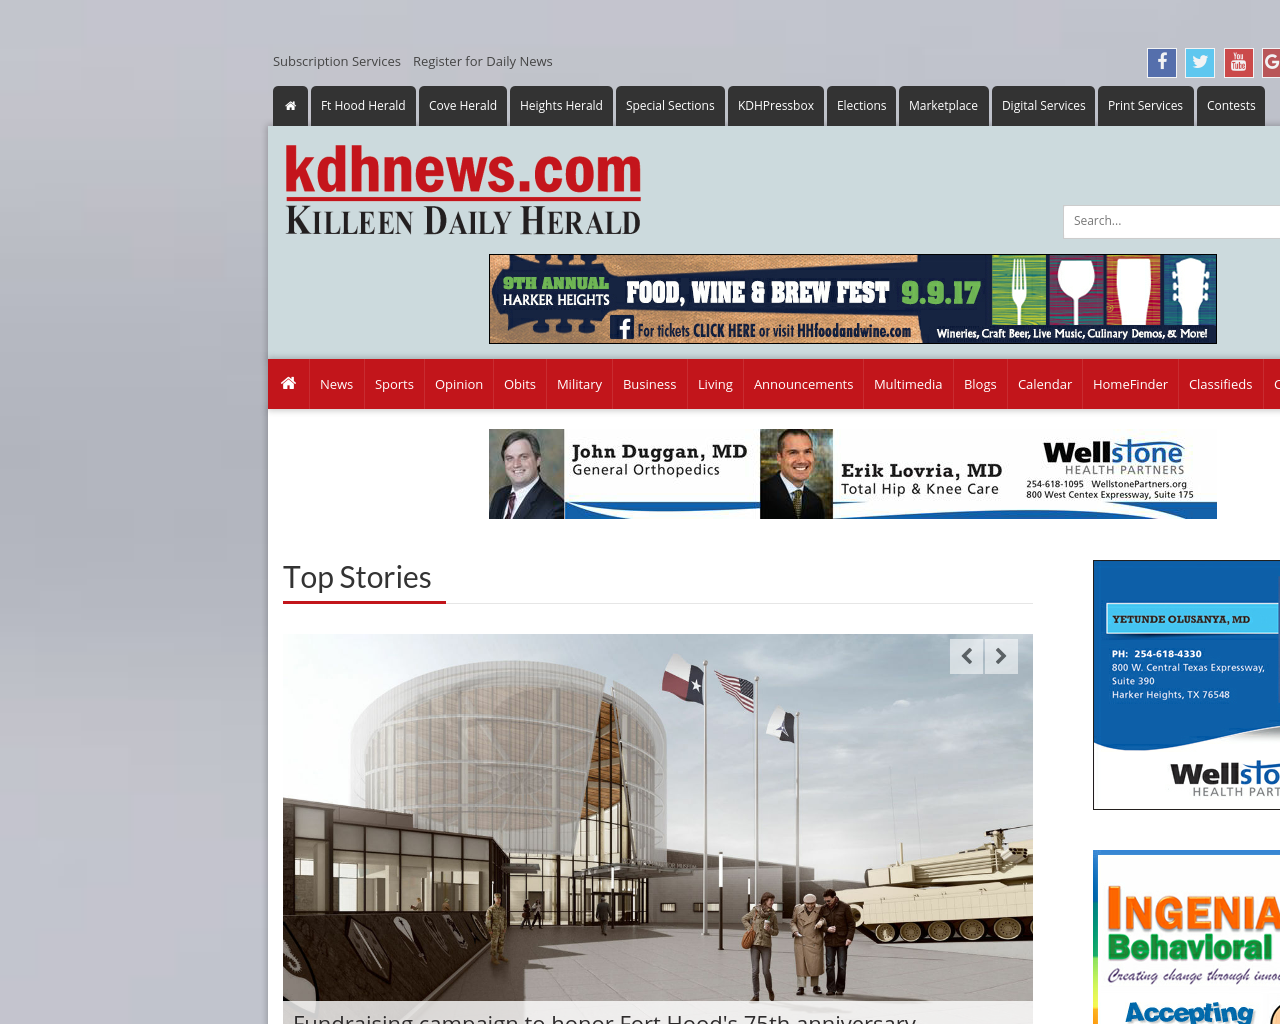 kdhnews.com-/-Killeen-Daily-Herald-Advertising-Reviews-Pricing